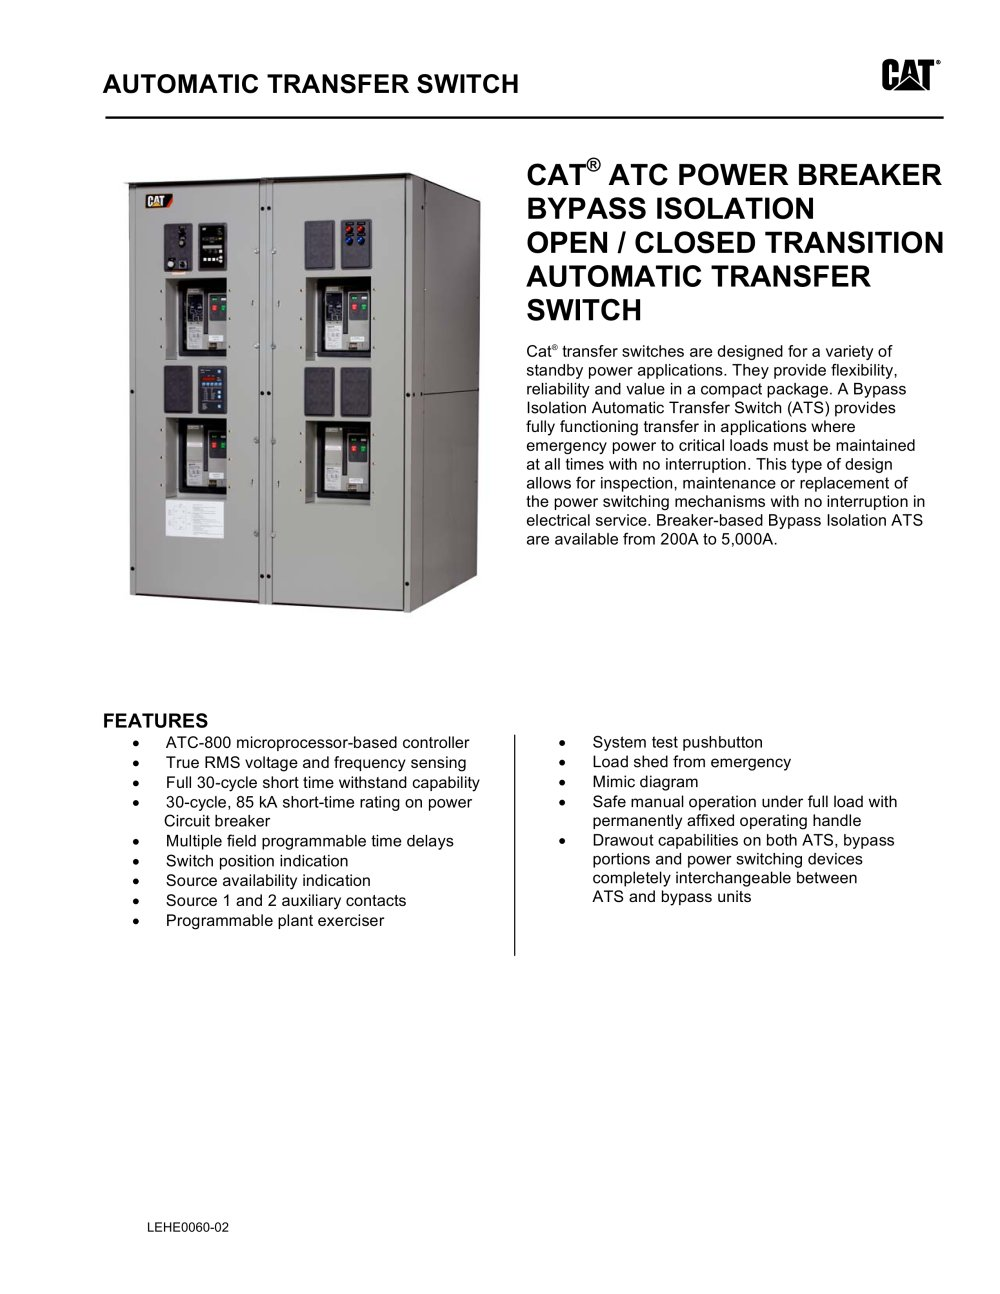 medium resolution of atc power breaker bypass isolation open closed transition automatic transfer switch 1 4